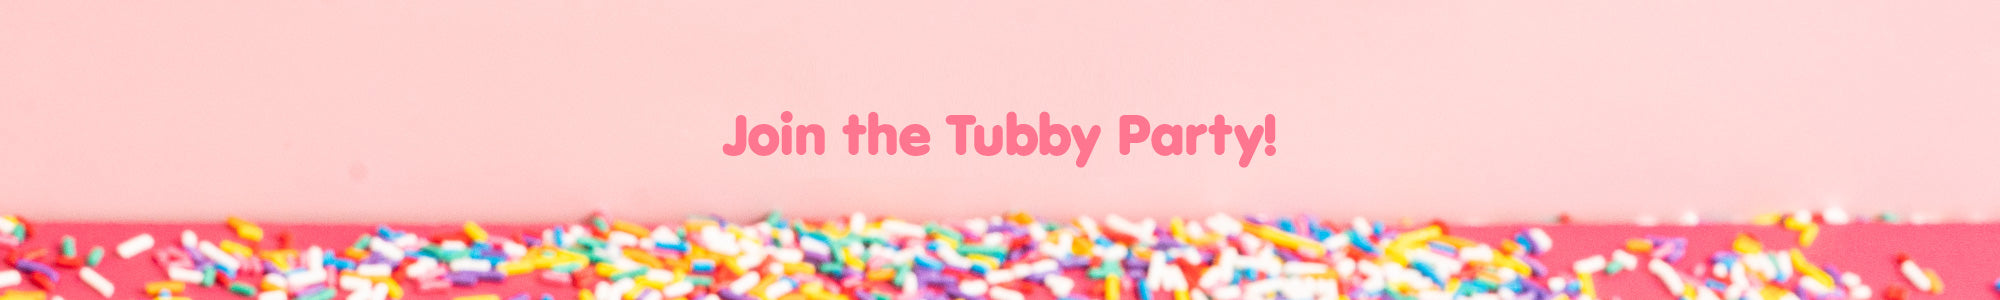 The Tubby Party